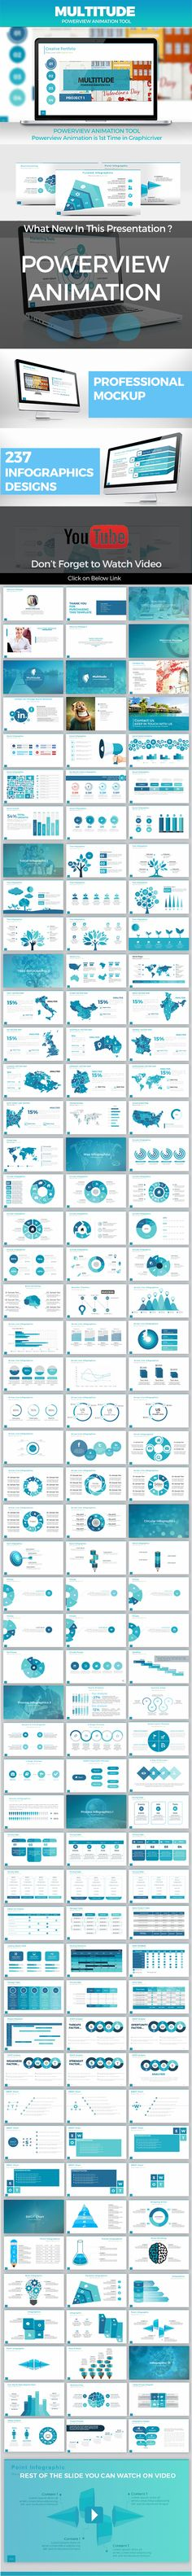 Multitude Multipurose Powerpoint Template With Powerview Animation - PowerPoint Templates Presentation Templates